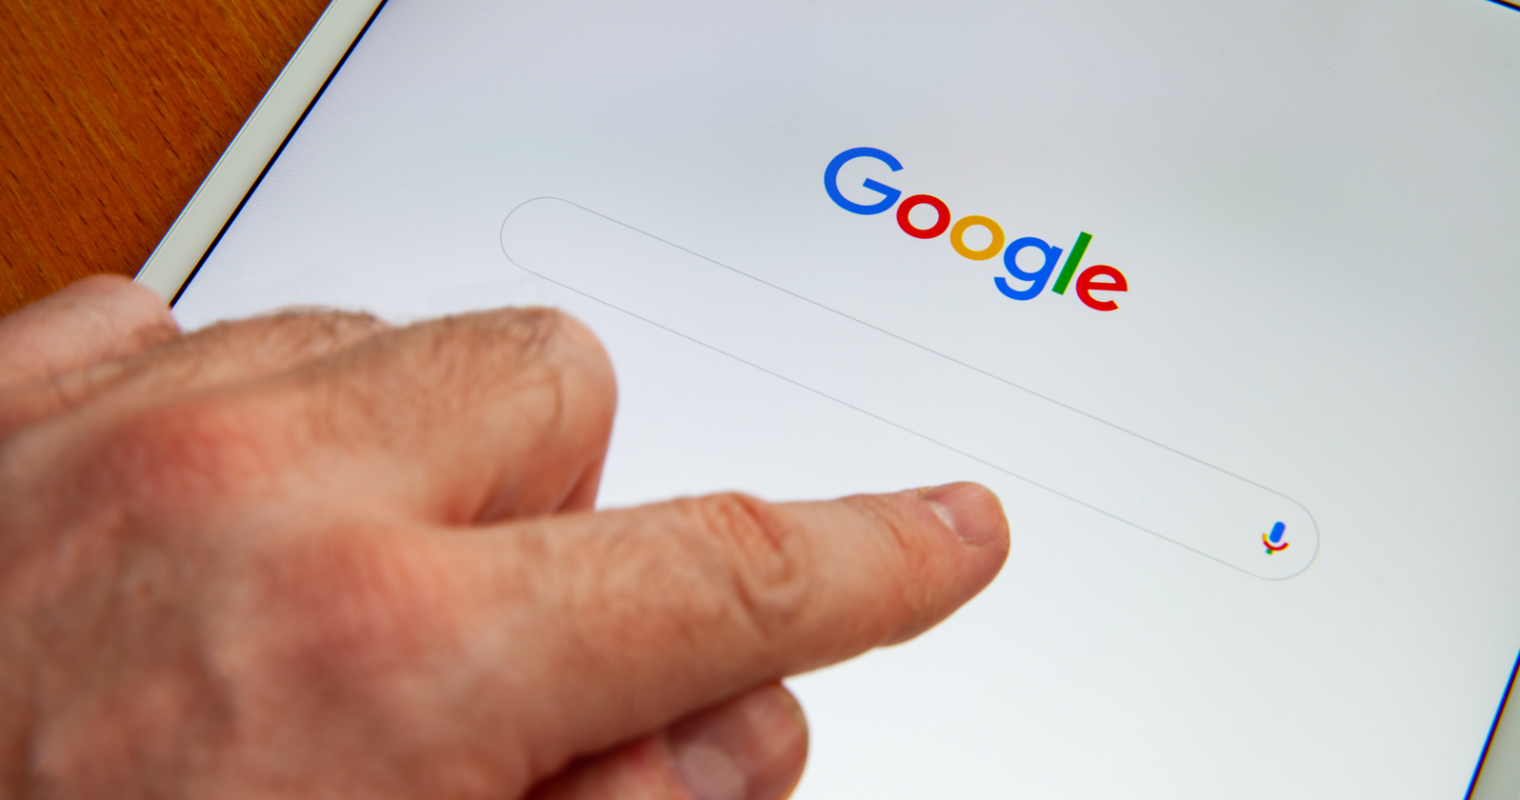 Google Explains the Process for Rolling Out Changes to Search Results